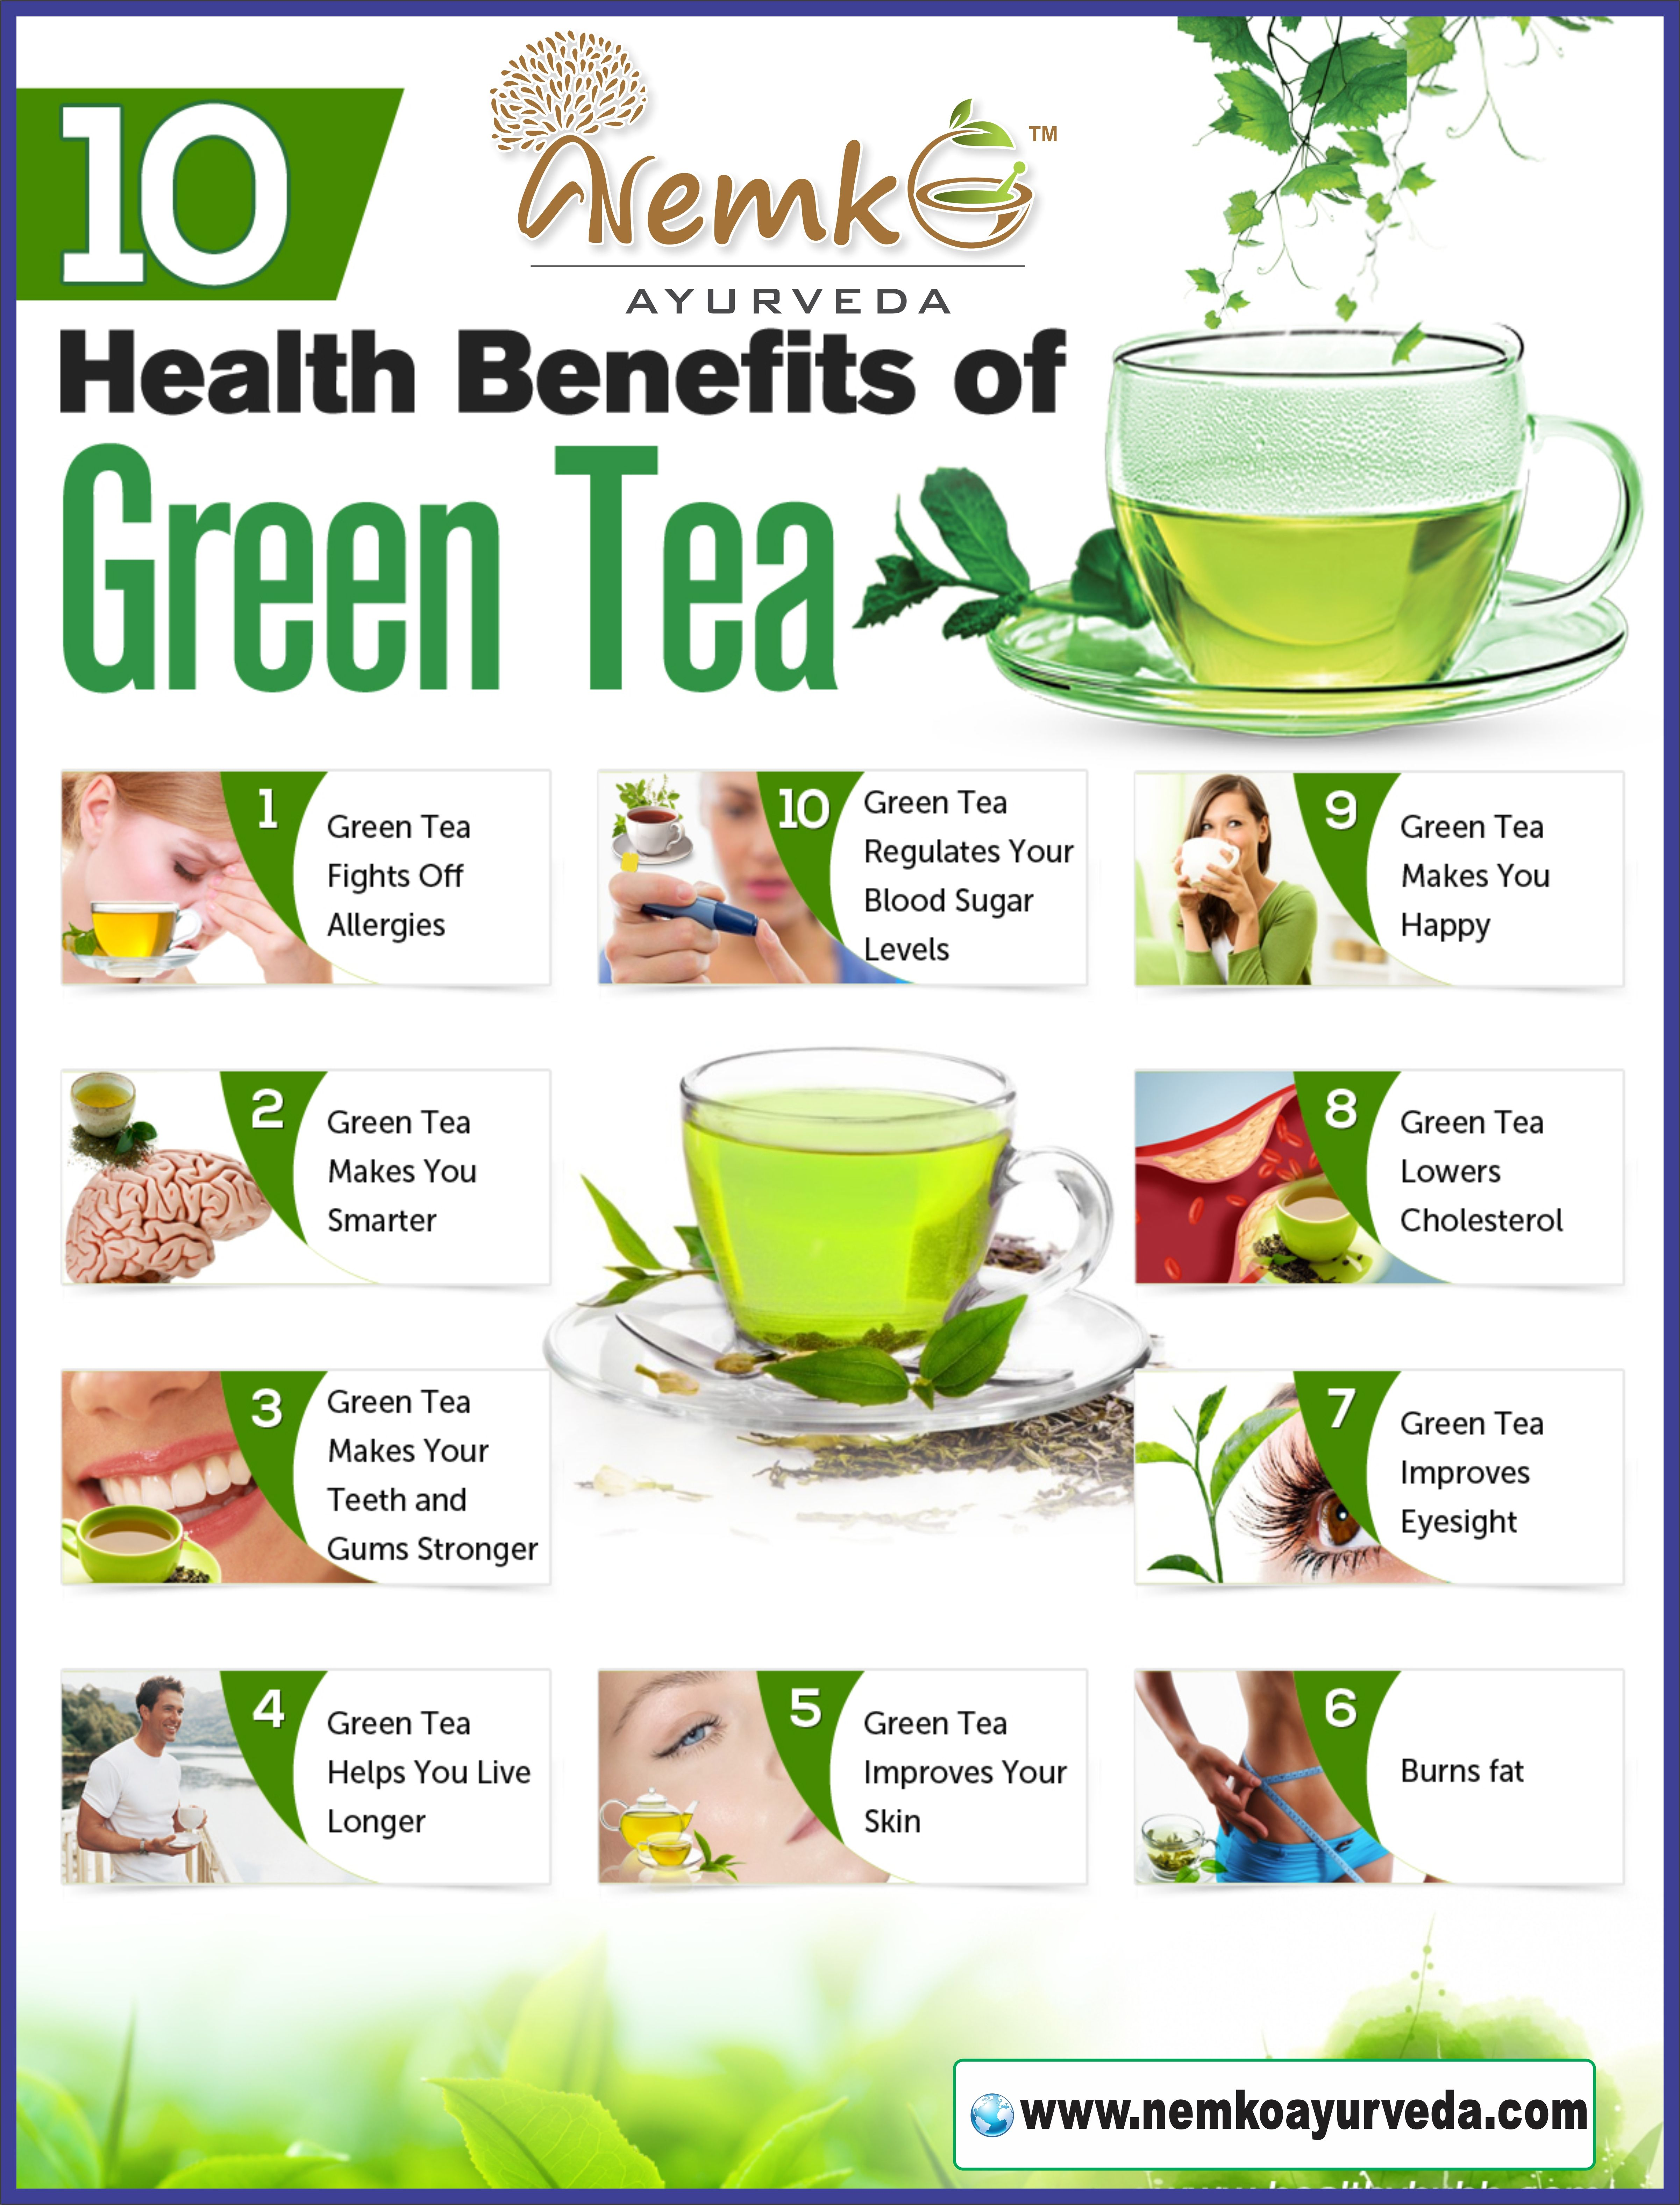 drinking this green tea daily can save your health and make